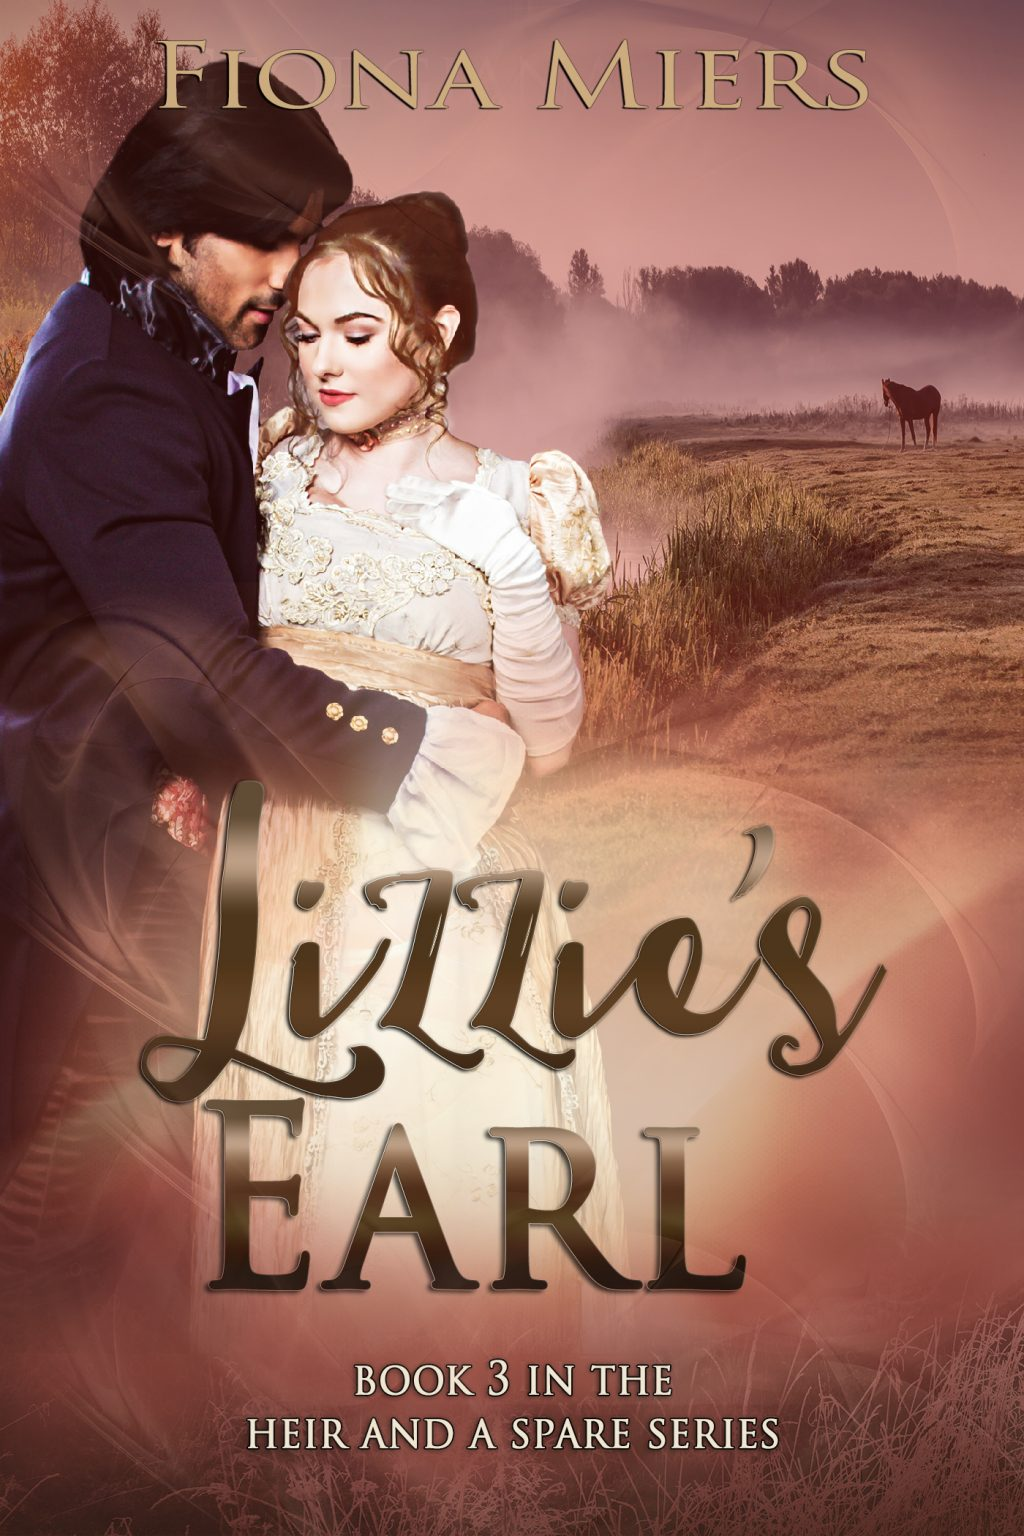 Lizzie's Earl by Fiona Miers